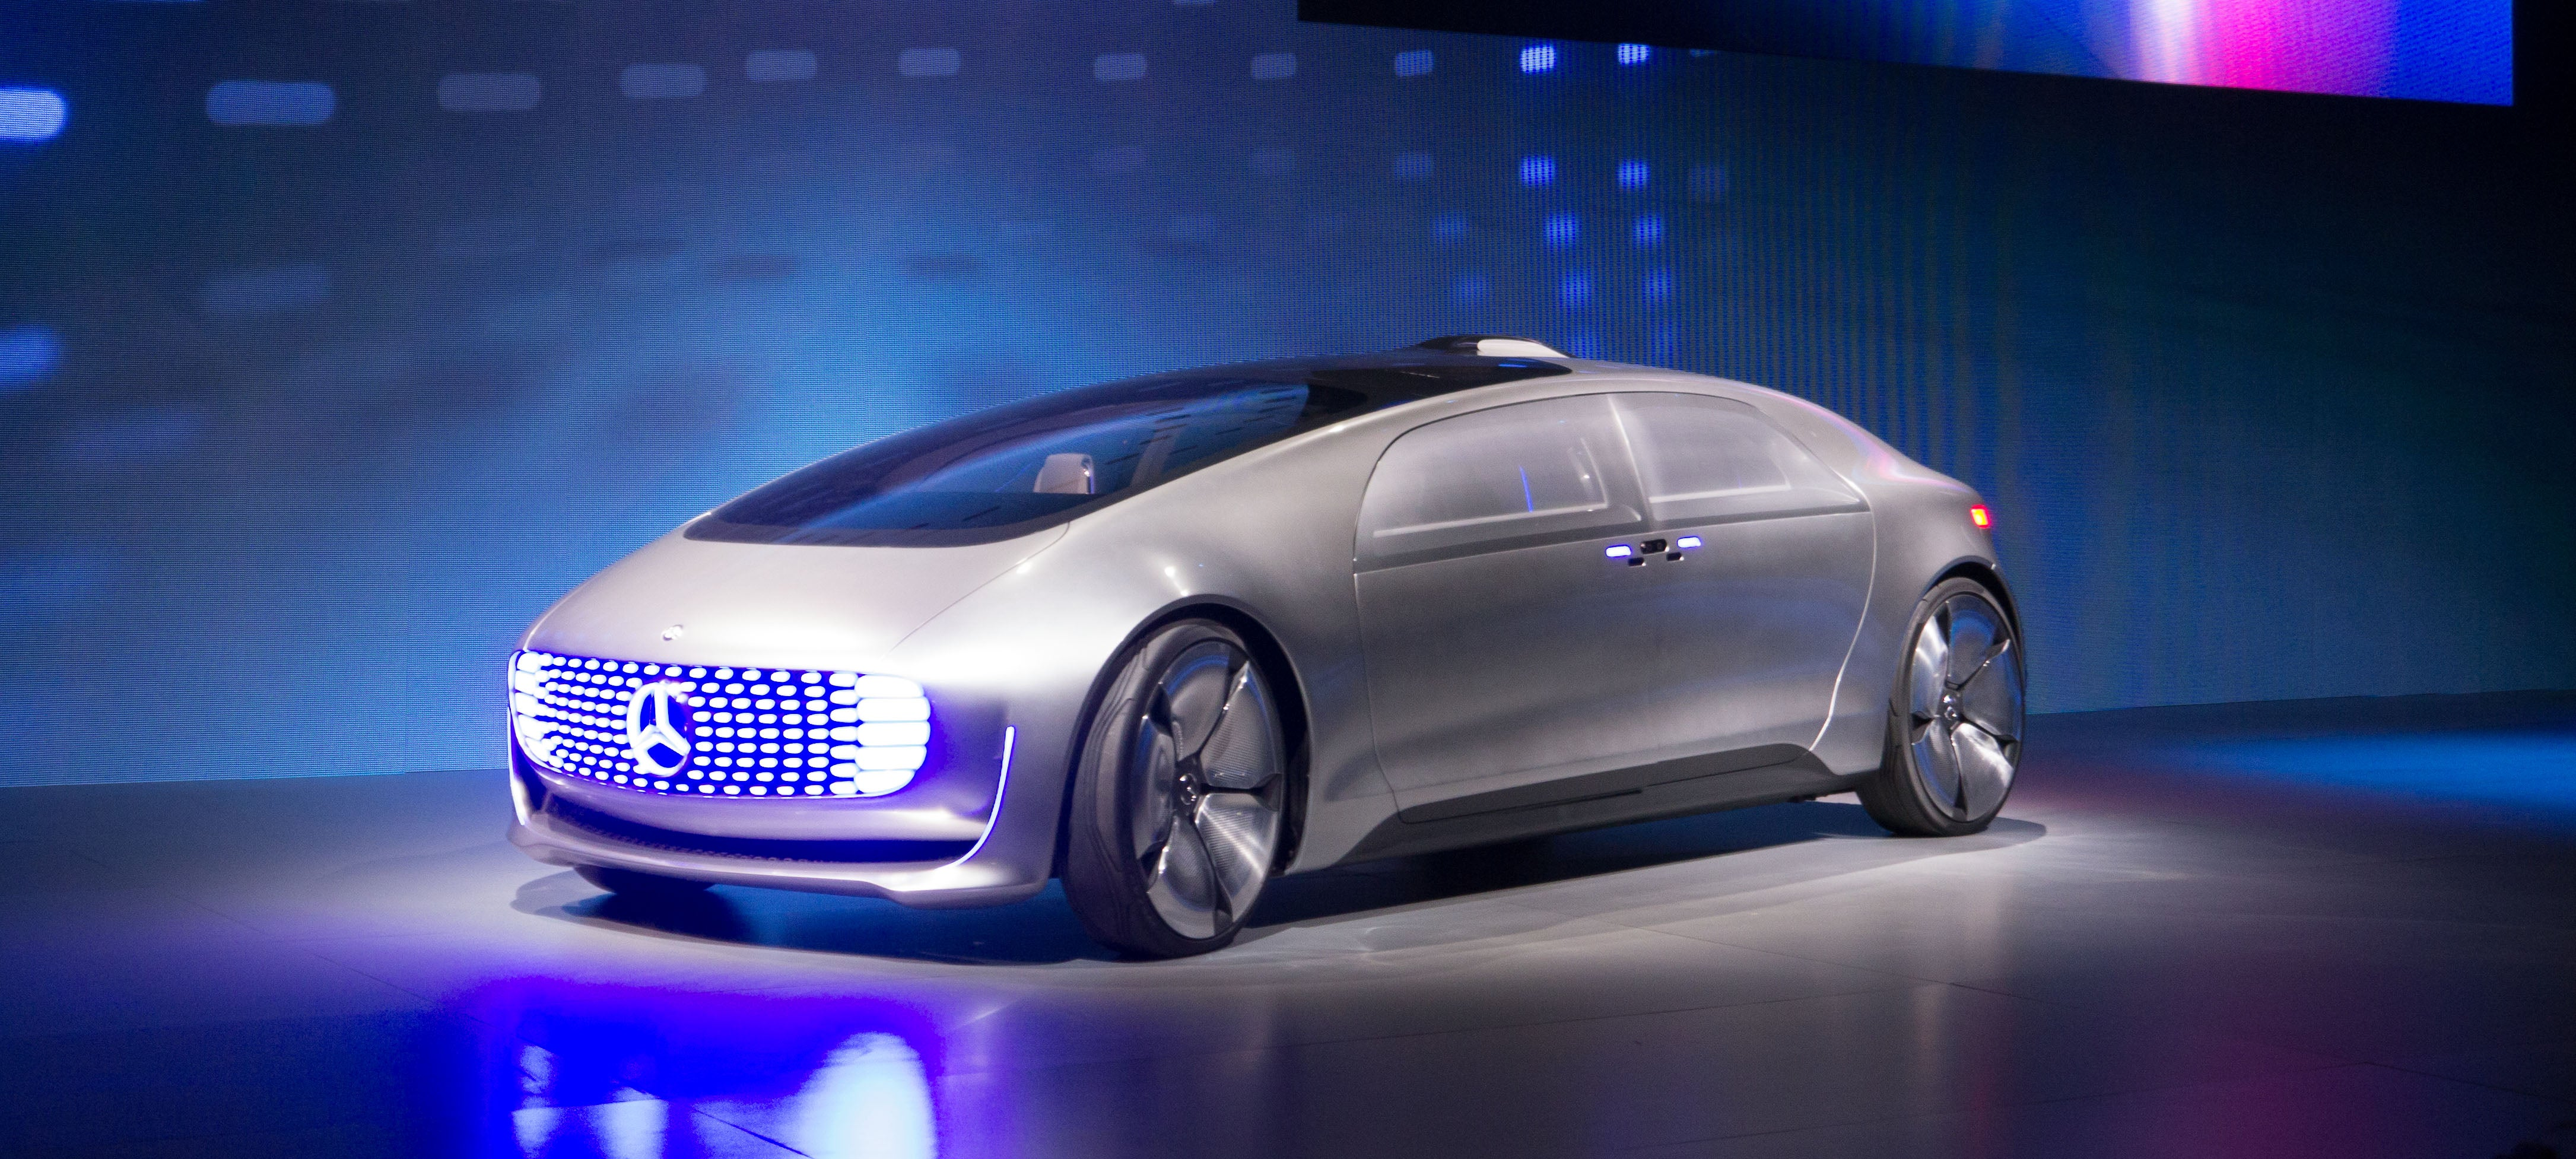 The New Mercedes Self Driving Car Concept Is Packed Full